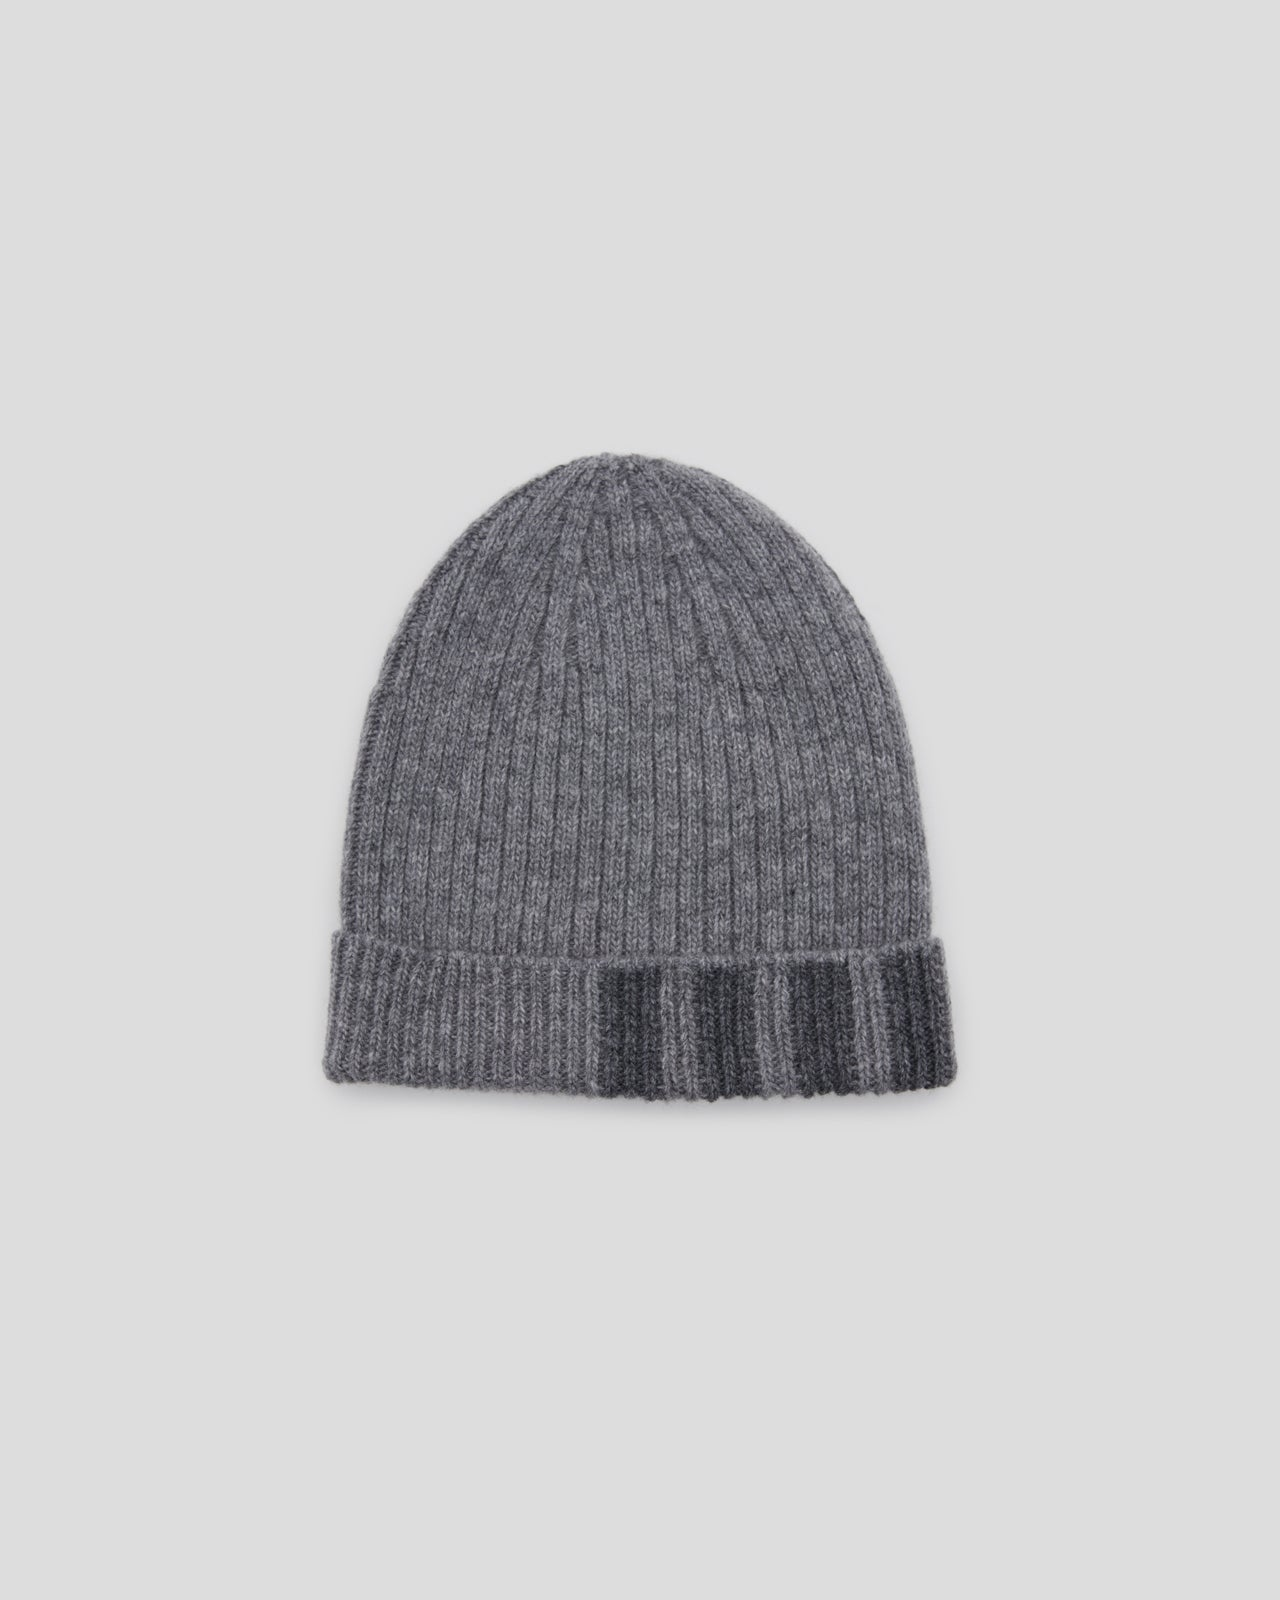 2X1 Rib Hat With 4-Bar in Gray